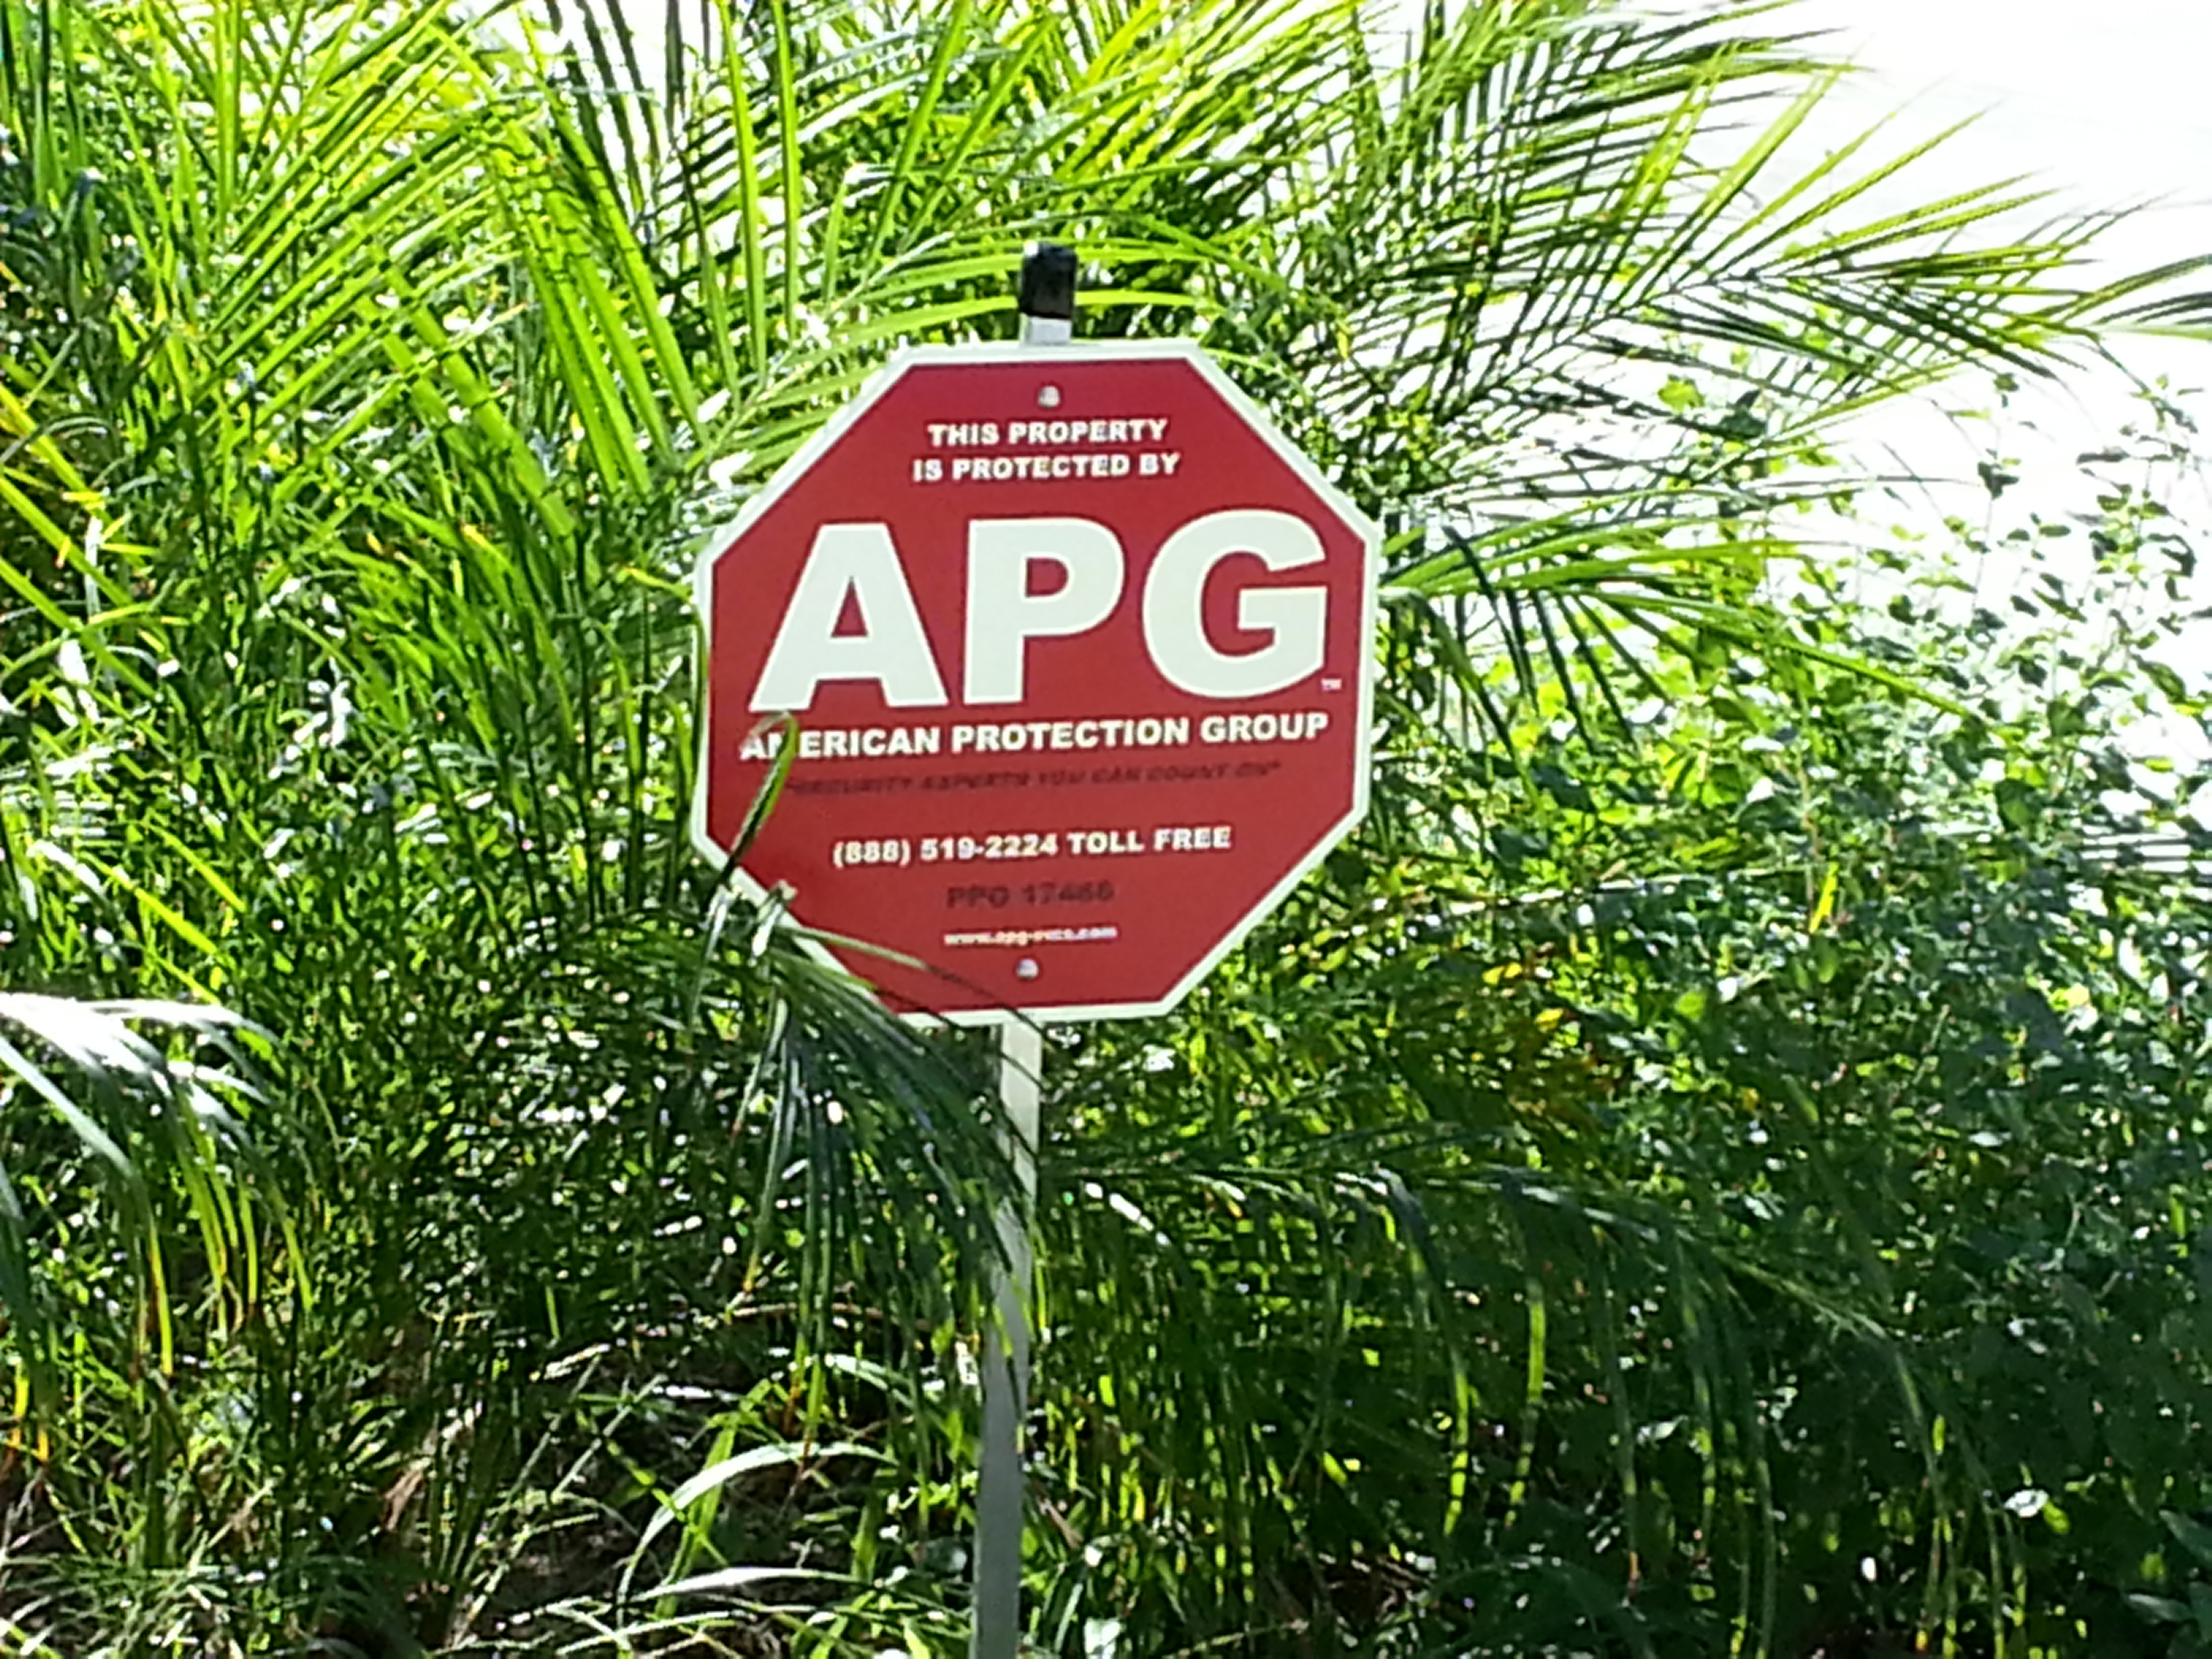 American Protection Group (APG) NV - Las Vegas Area Branch Office image 6